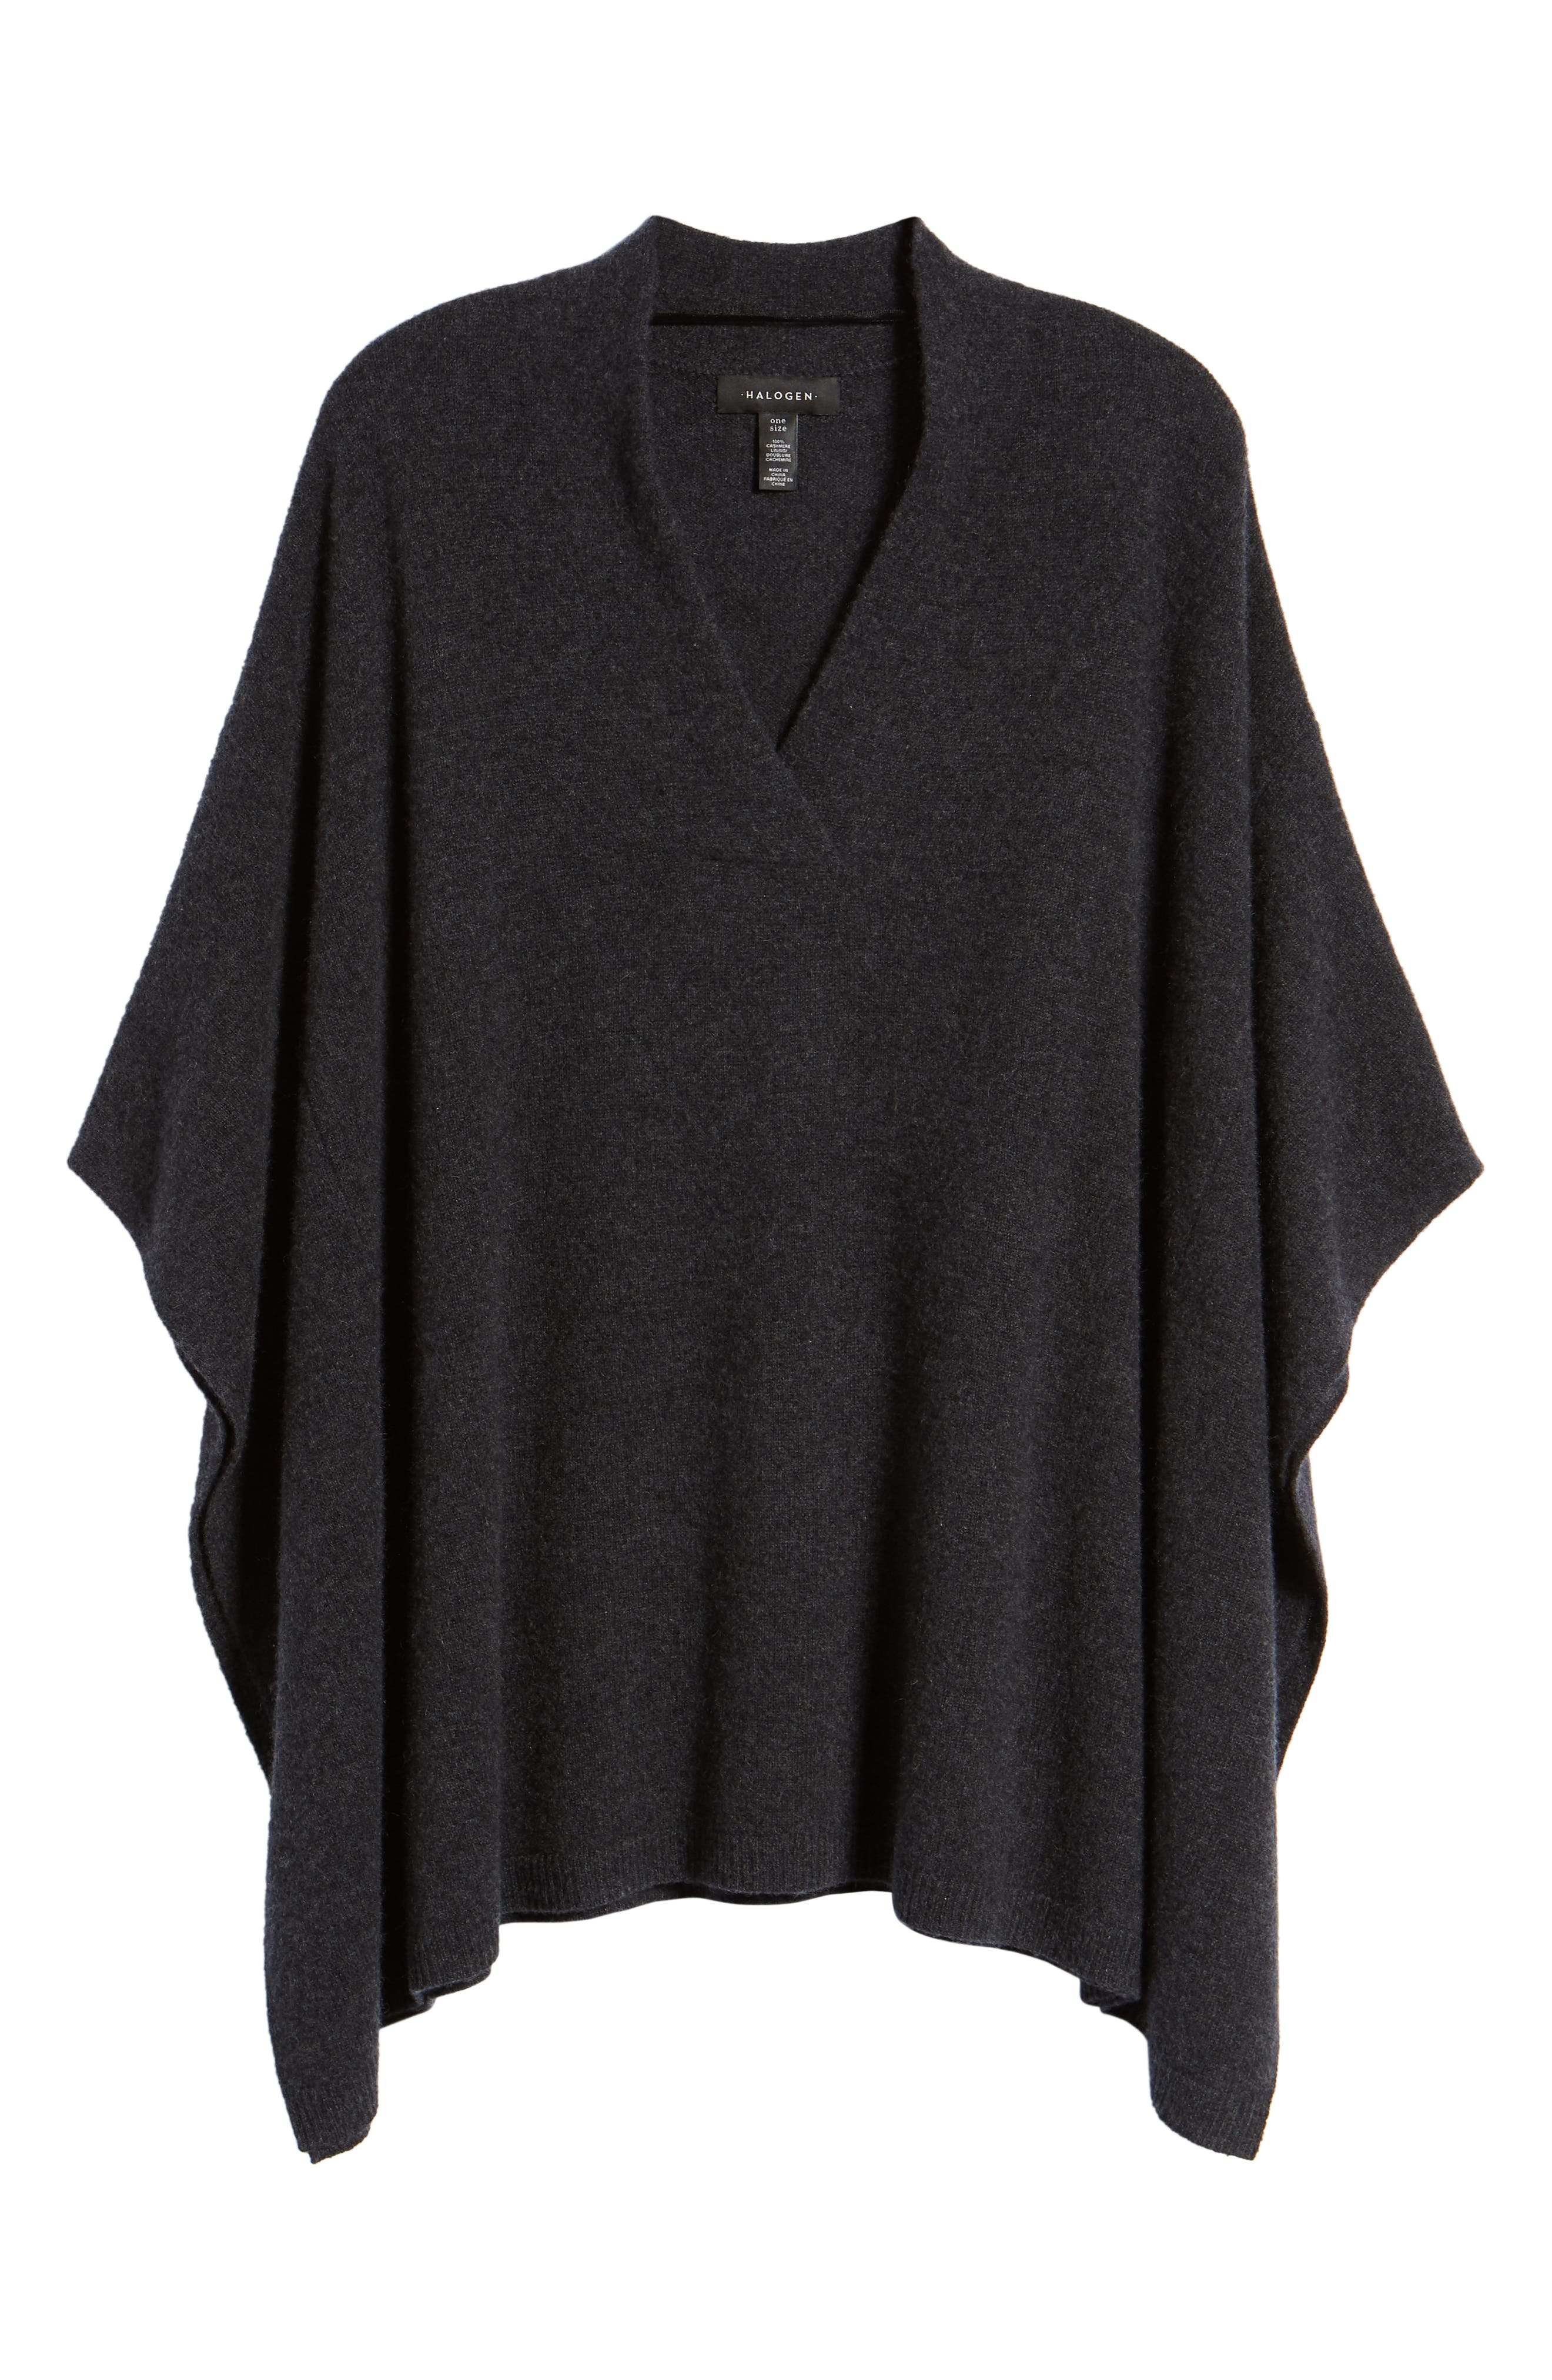 Halogen Cashmere Poncho,                             Alternate thumbnail 6, color,                             GREY CHARCOAL HEATHER